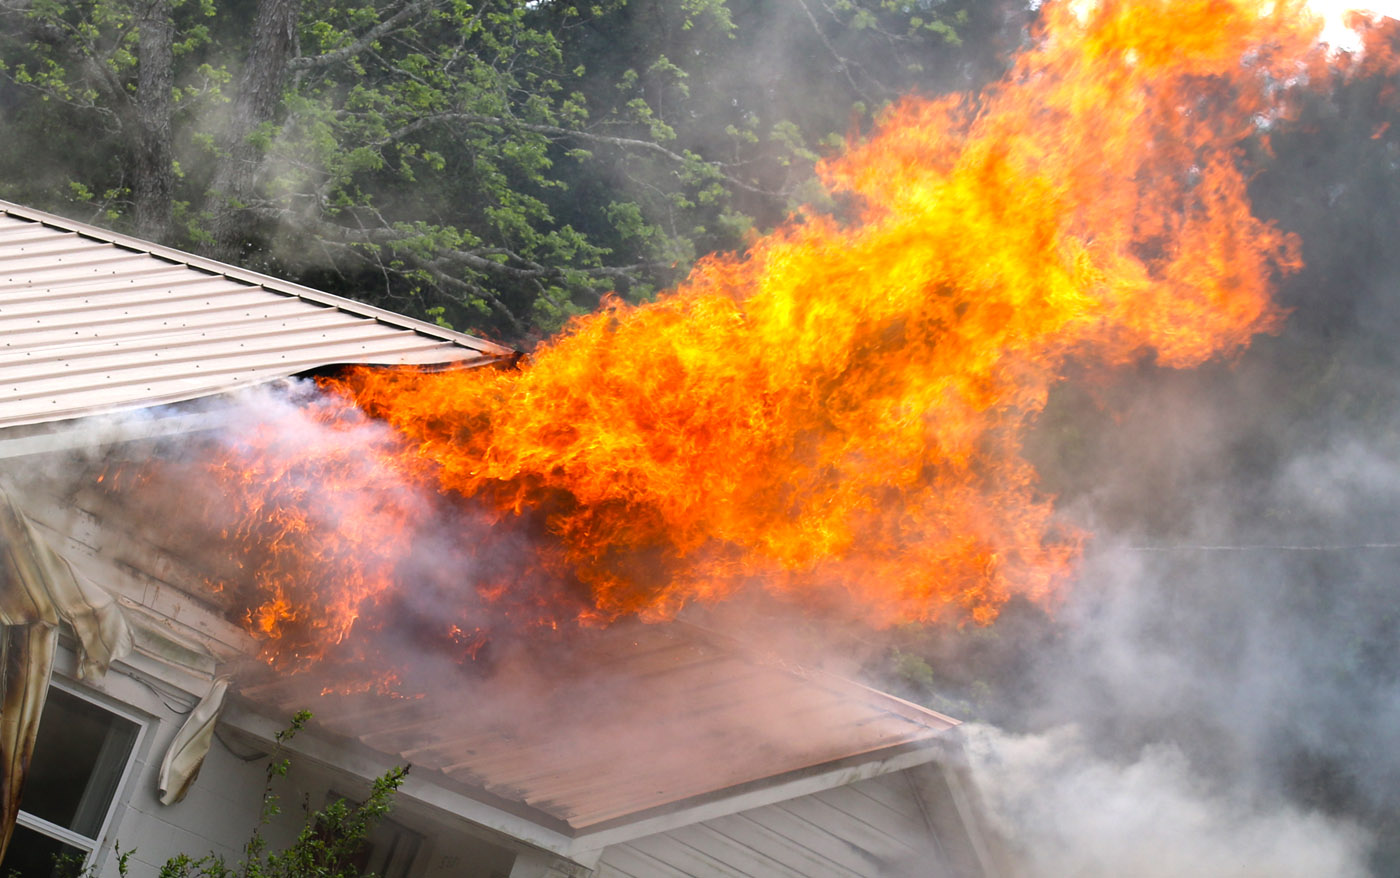 Report Filed Week Before House Fire Claiming Evicted Tenant Cut ...